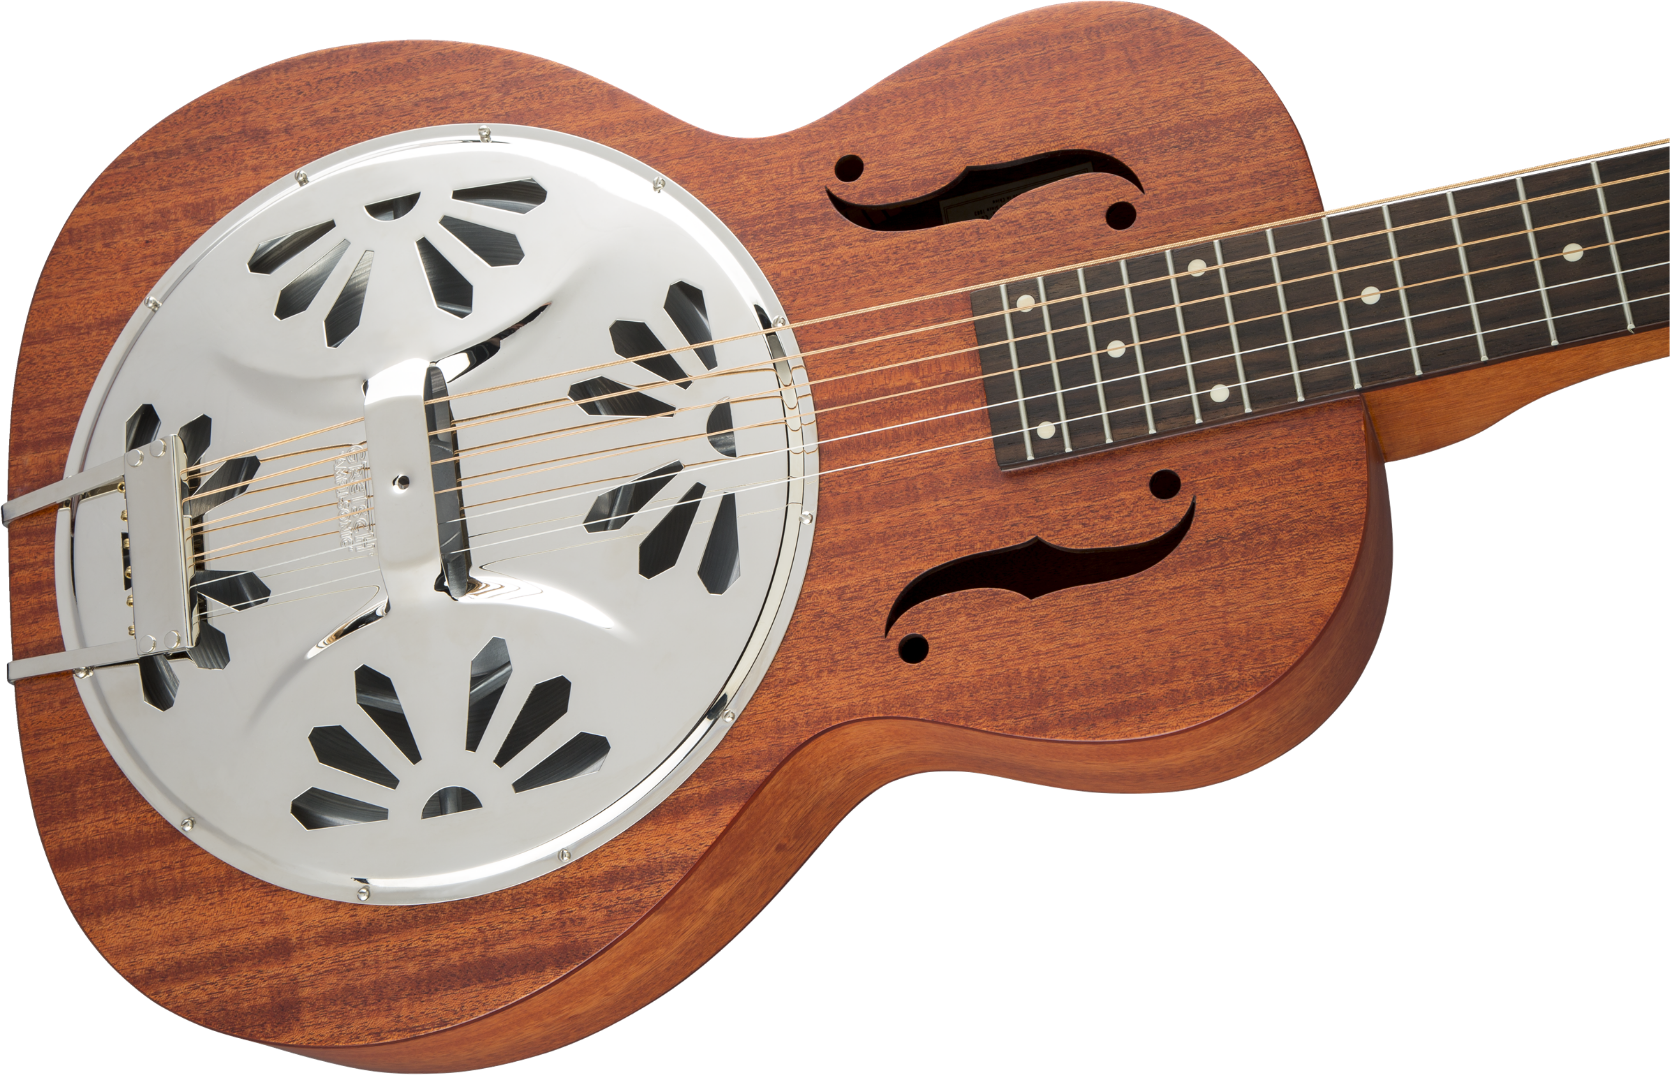 gretsch g9210 square neck boxcar mahogany resonator acoustic guitar 885978872398 ebay. Black Bedroom Furniture Sets. Home Design Ideas